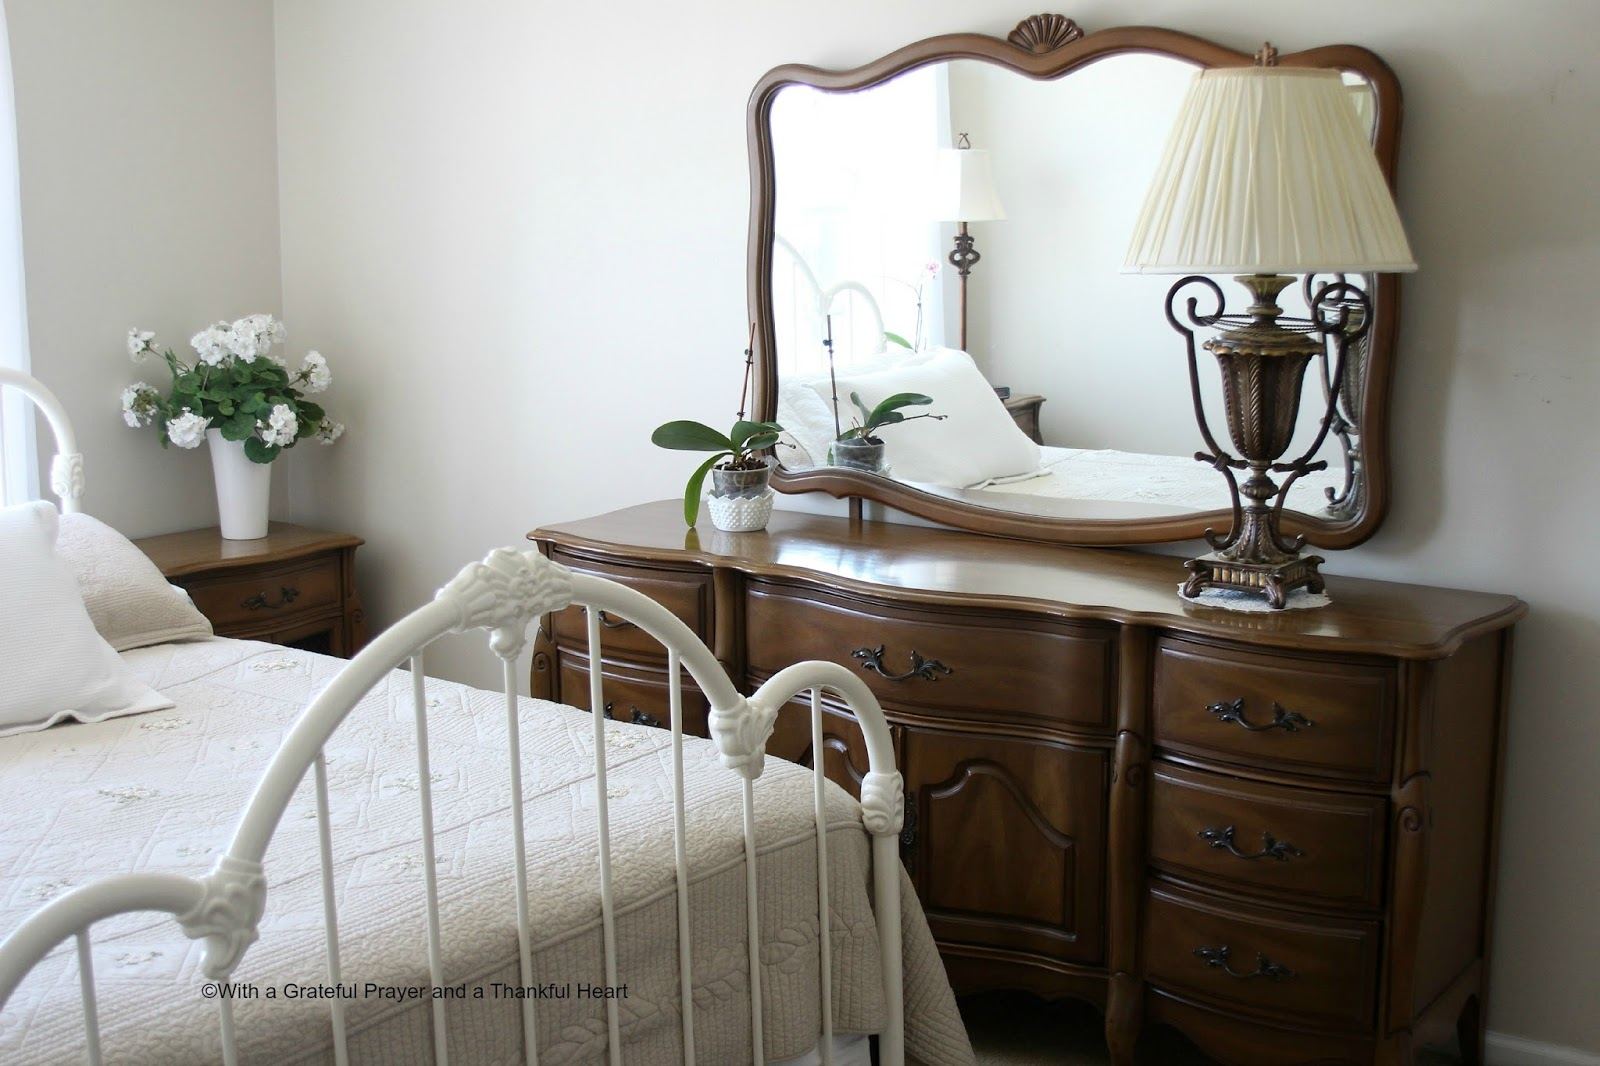 vintage french provincial bedroom set grateful prayer thankful heart. Black Bedroom Furniture Sets. Home Design Ideas